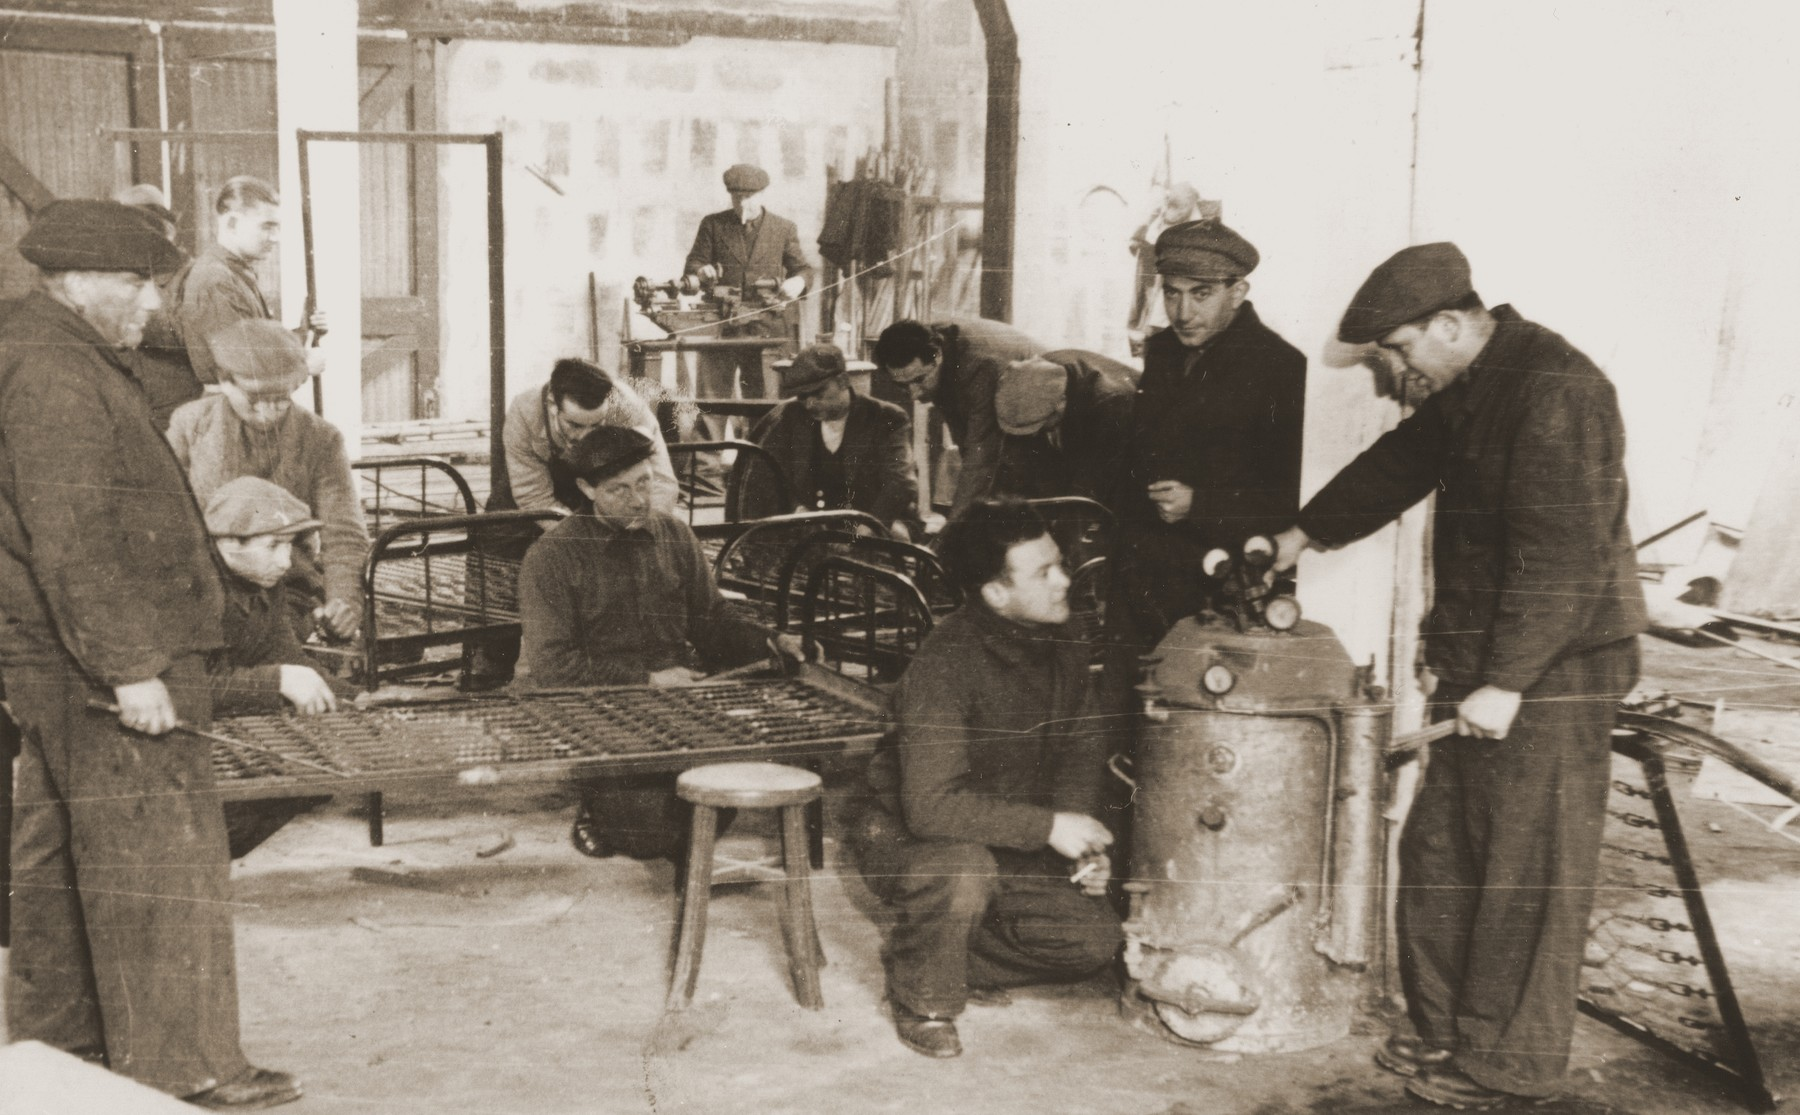 Jewish refugees assemble bedframes in a metalshop at the Pingliang Road Home in Shanghai.  Pictured at the far right is Viktor Stummer.